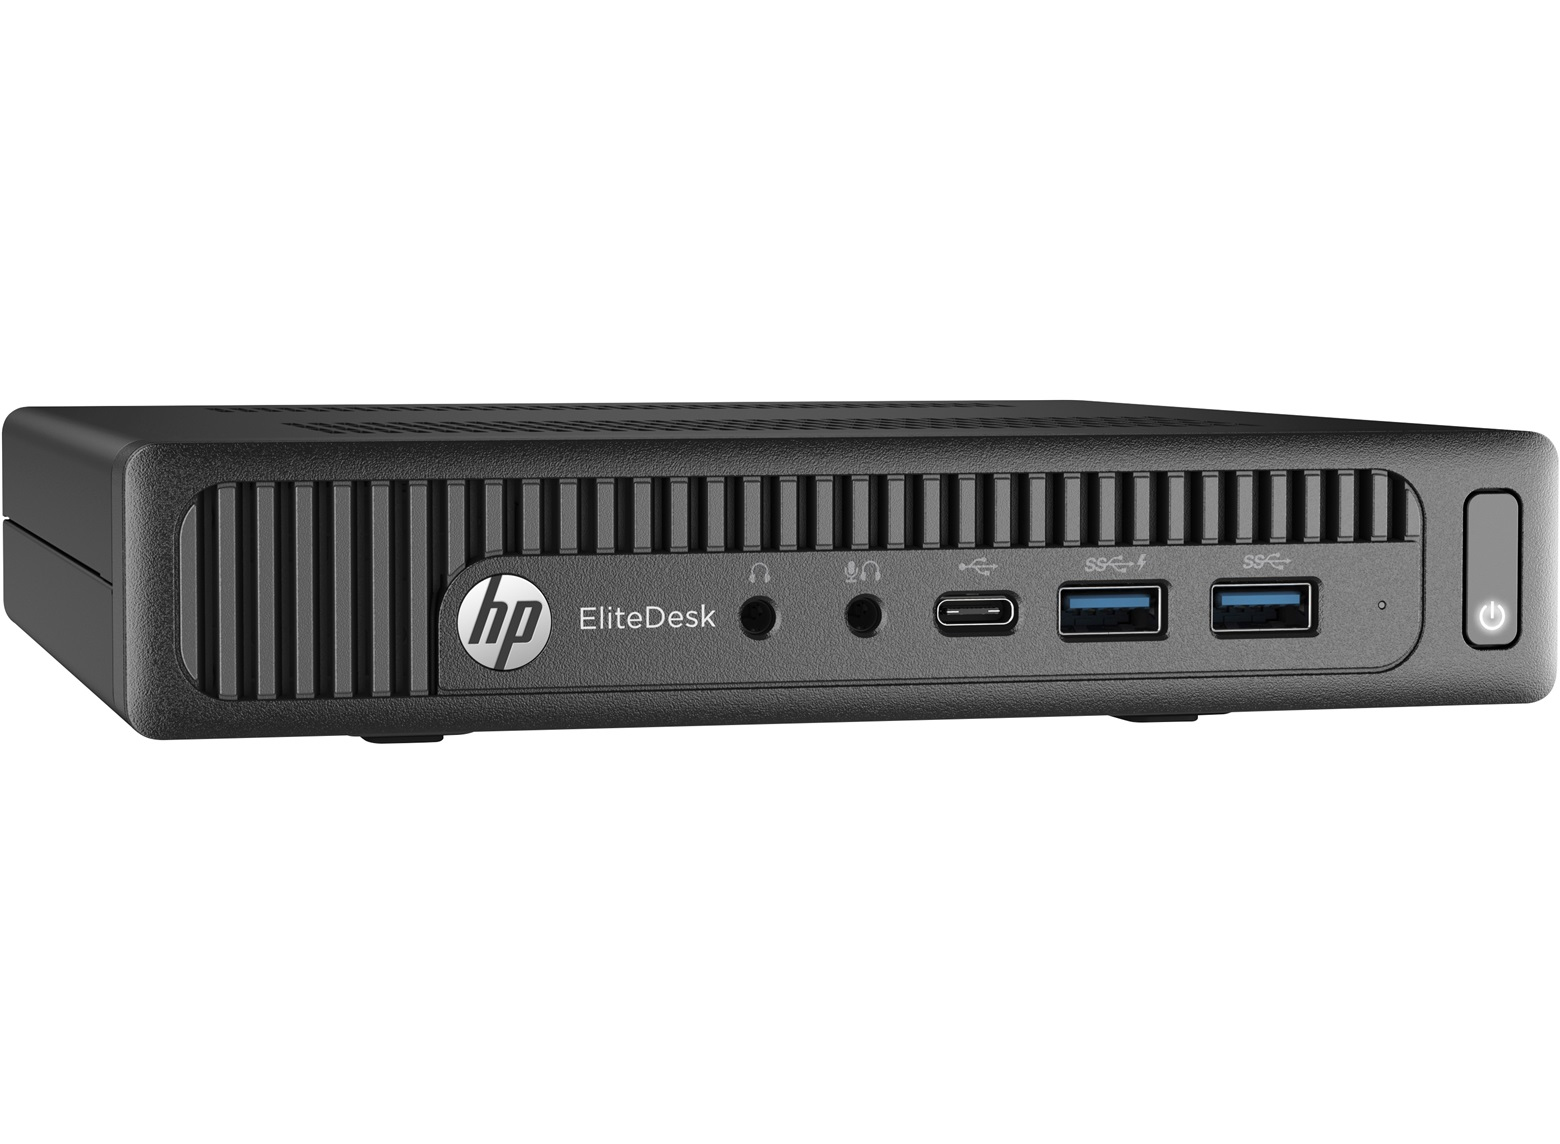 HP EliteDesk 800 G2 3.2GHz i3-6100T 1L sized PC Black Mini PC